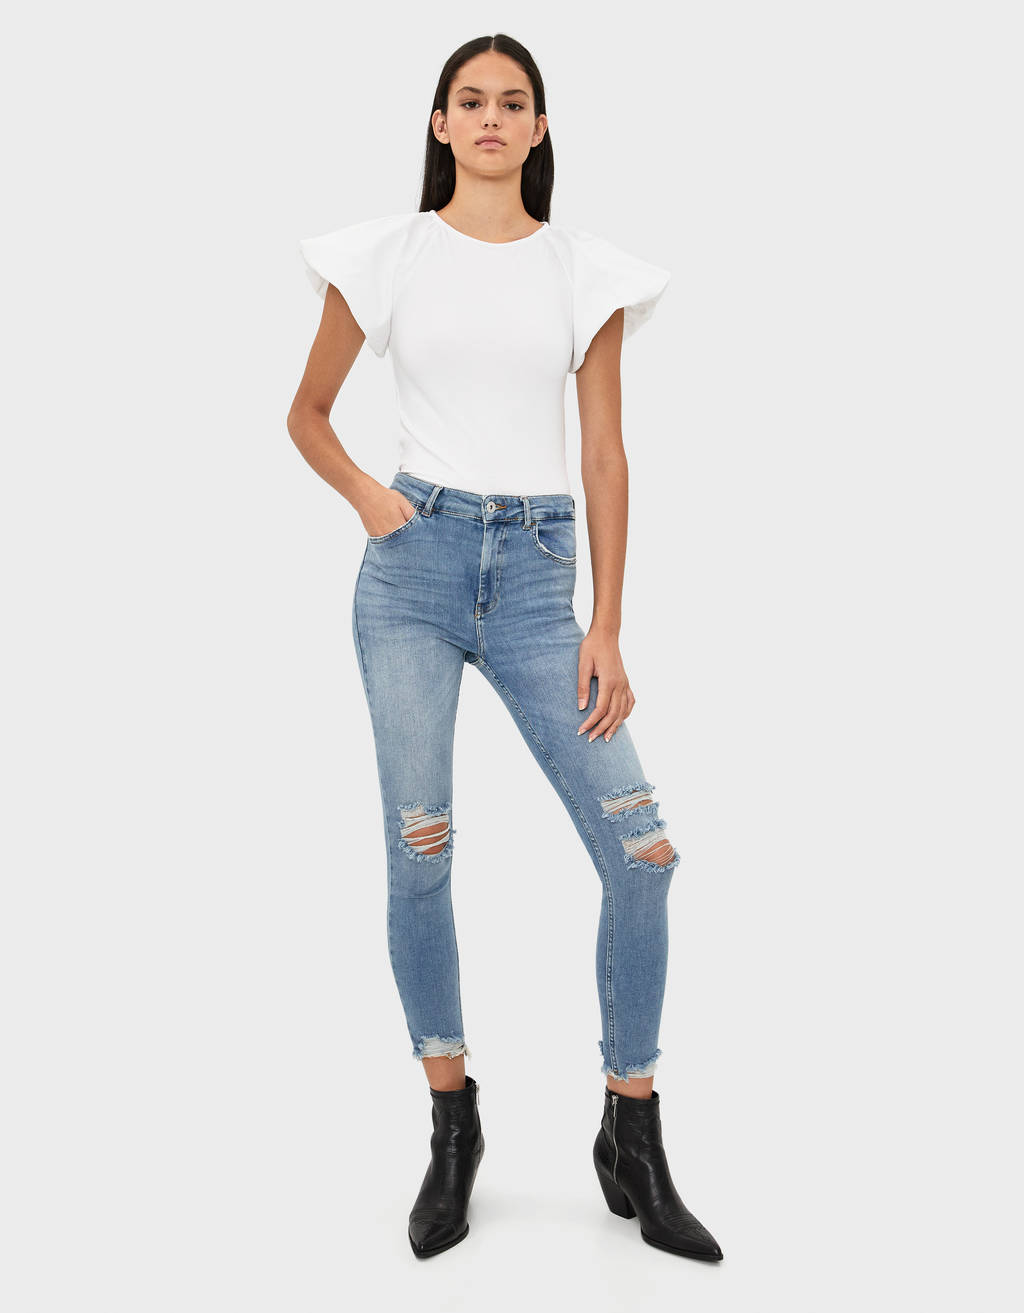 High waist skinny jeans with rips